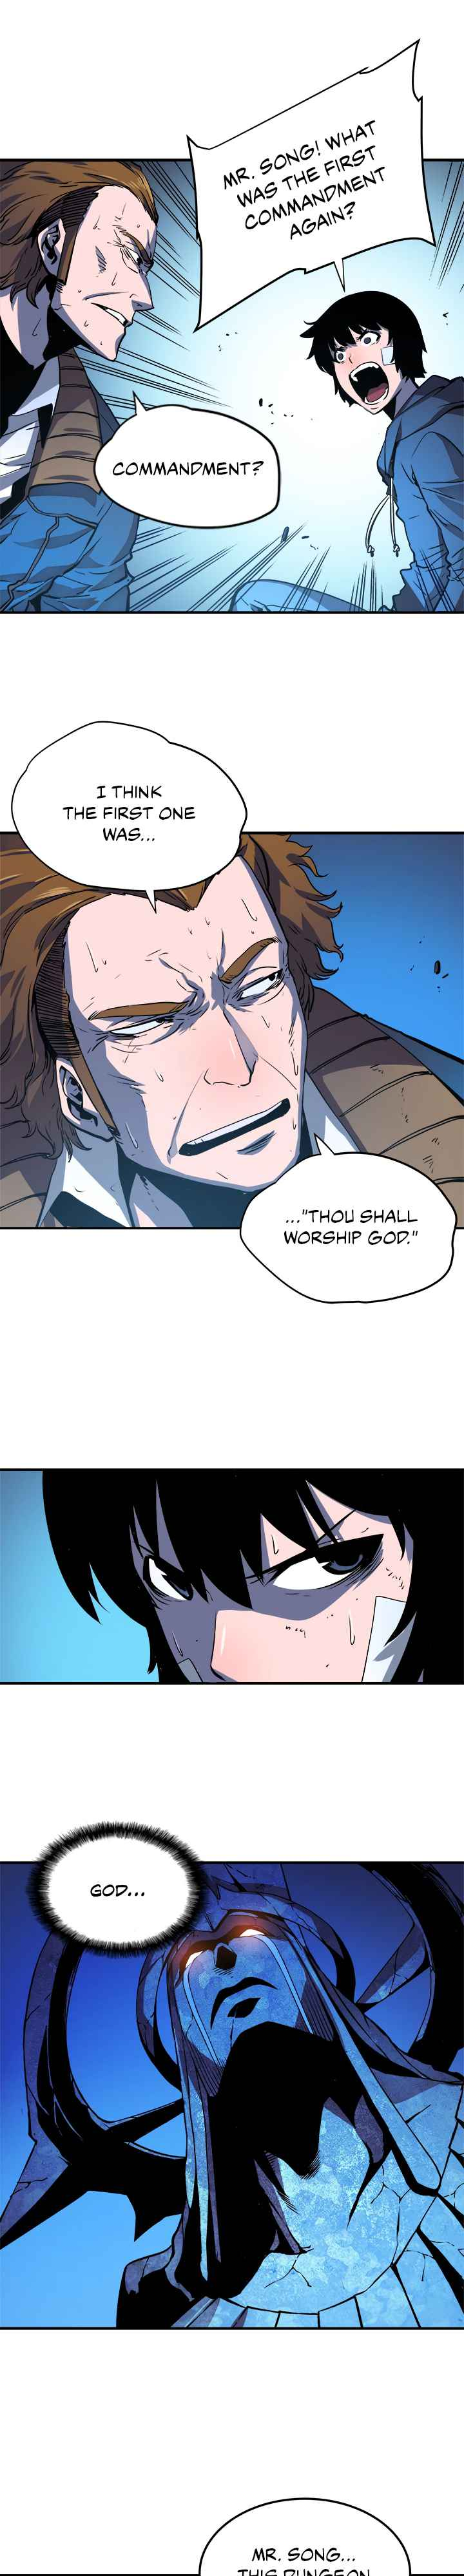 Solo Leveling Chapter 5 Page 20